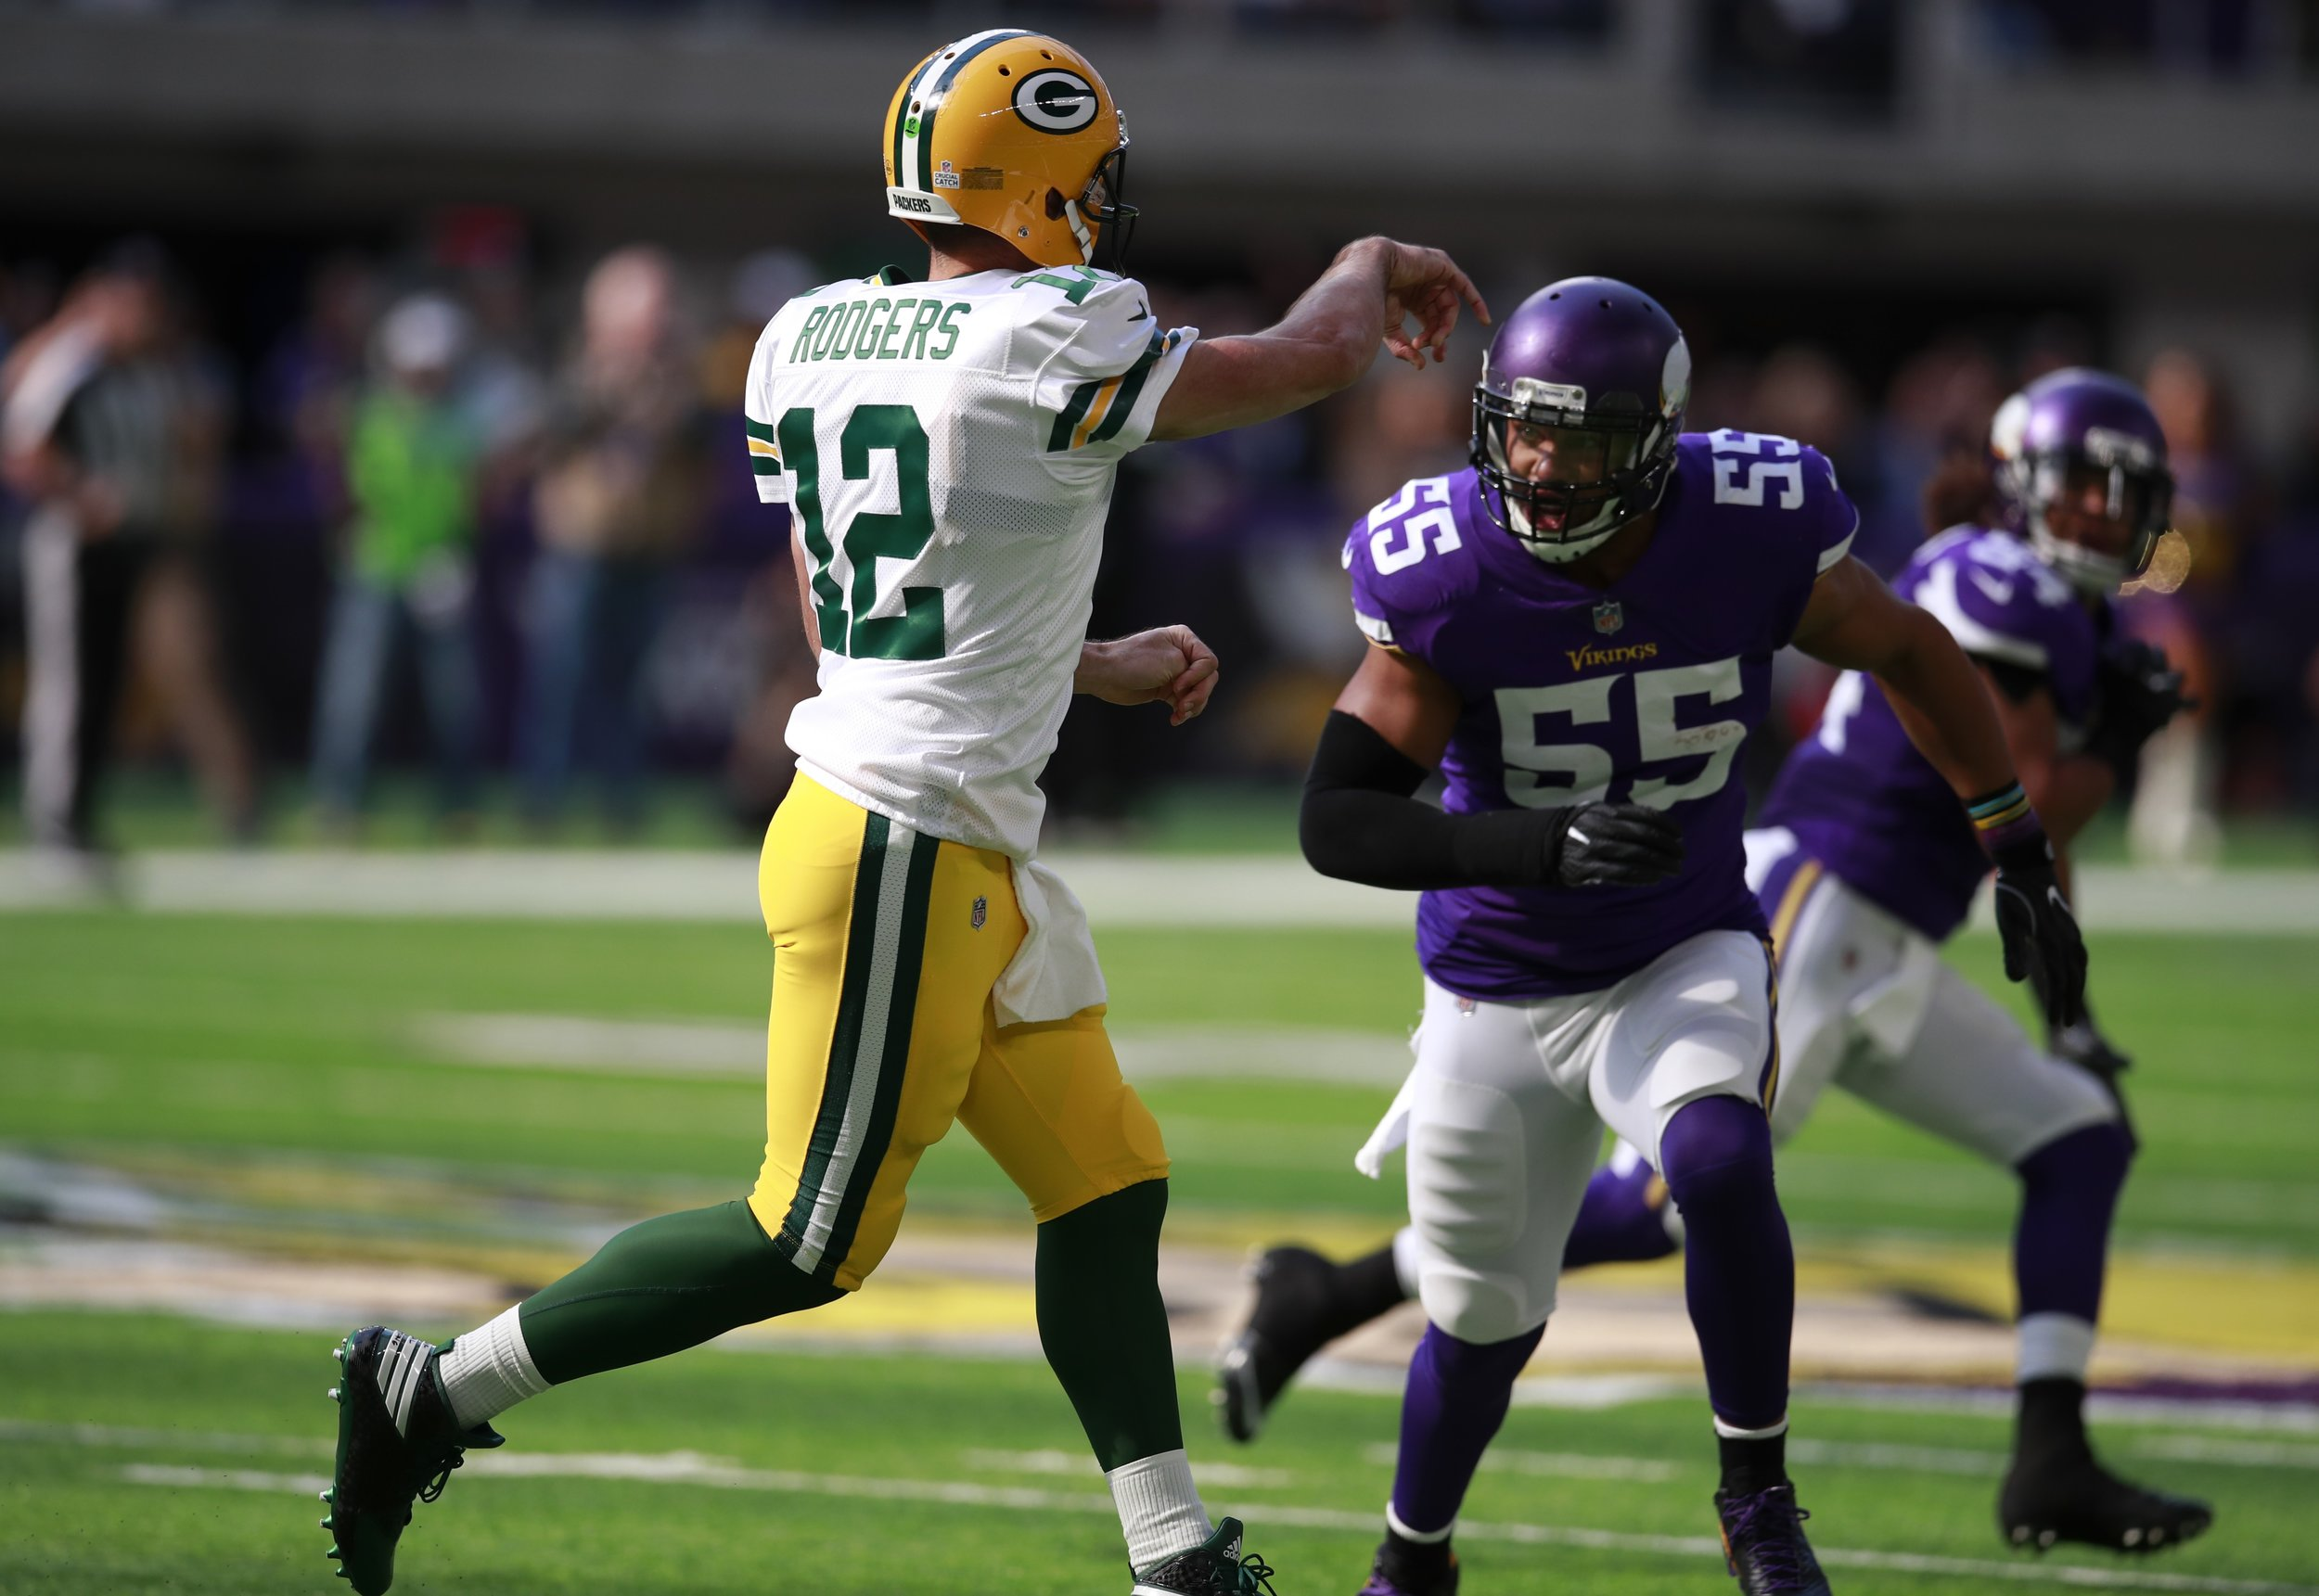 Aaron Rodgers' injury last season was a new chapter in the Packers-Vikings rivalry. Sunday's game against the Minnesota Vikings could be a turning point in Green Bay's favor.